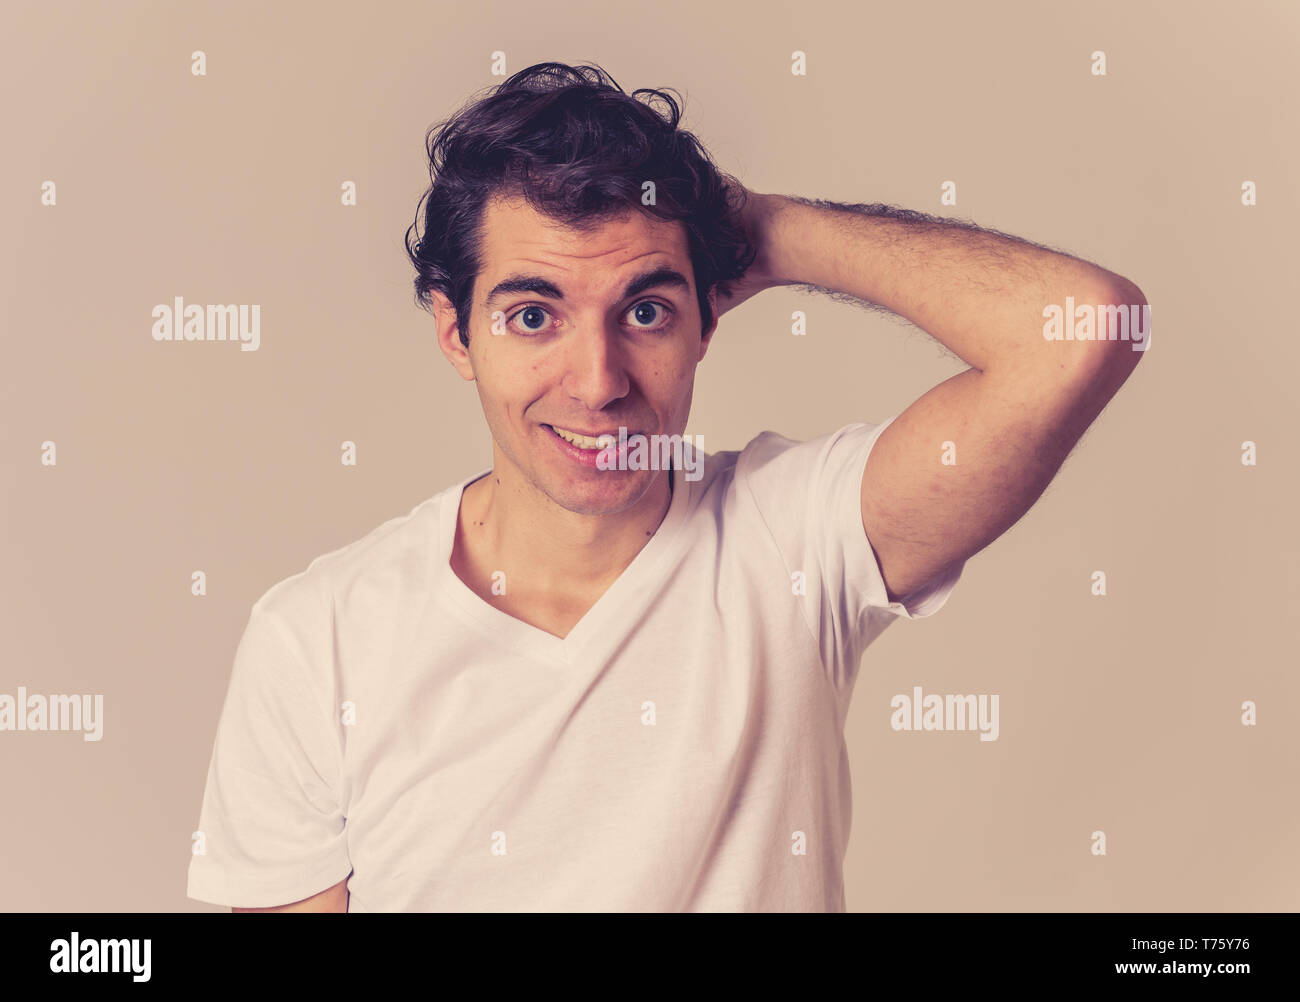 Close up portrait of funny young man looking embarrassed feeling ashamed and shy isolated against neutral background in People, human emotions and exp - Stock Image